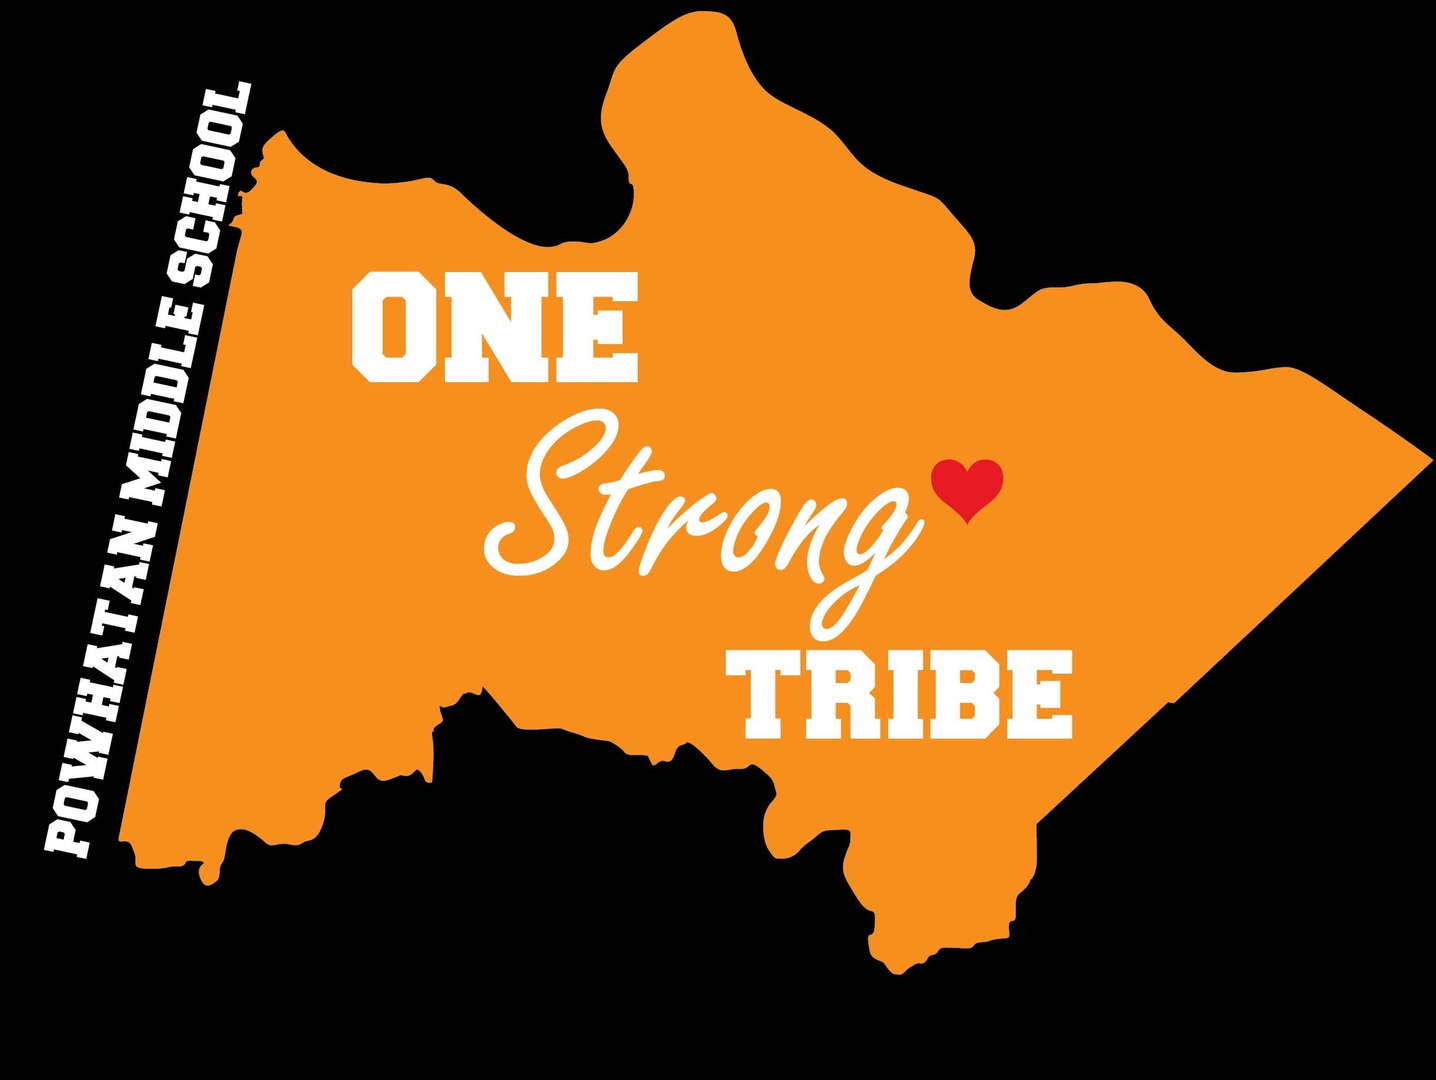 One strong tribe logo